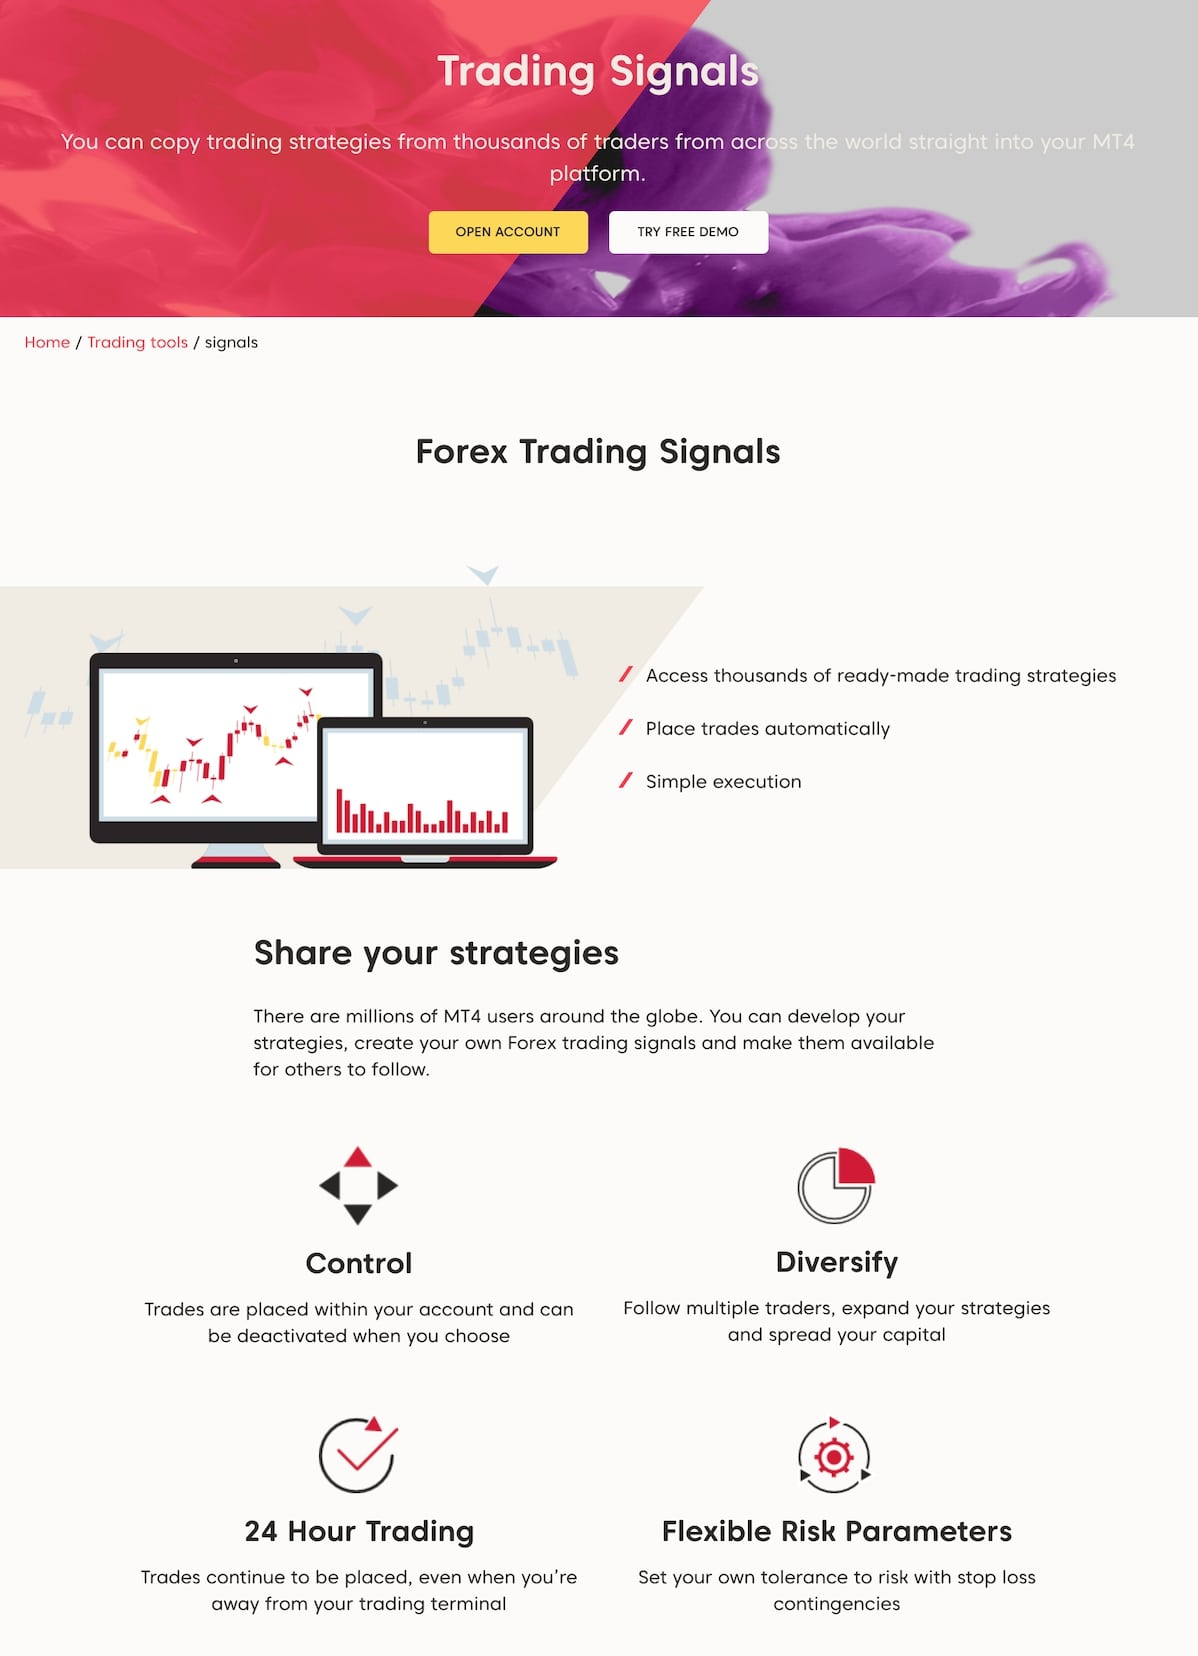 axi - Forex Trading Signals